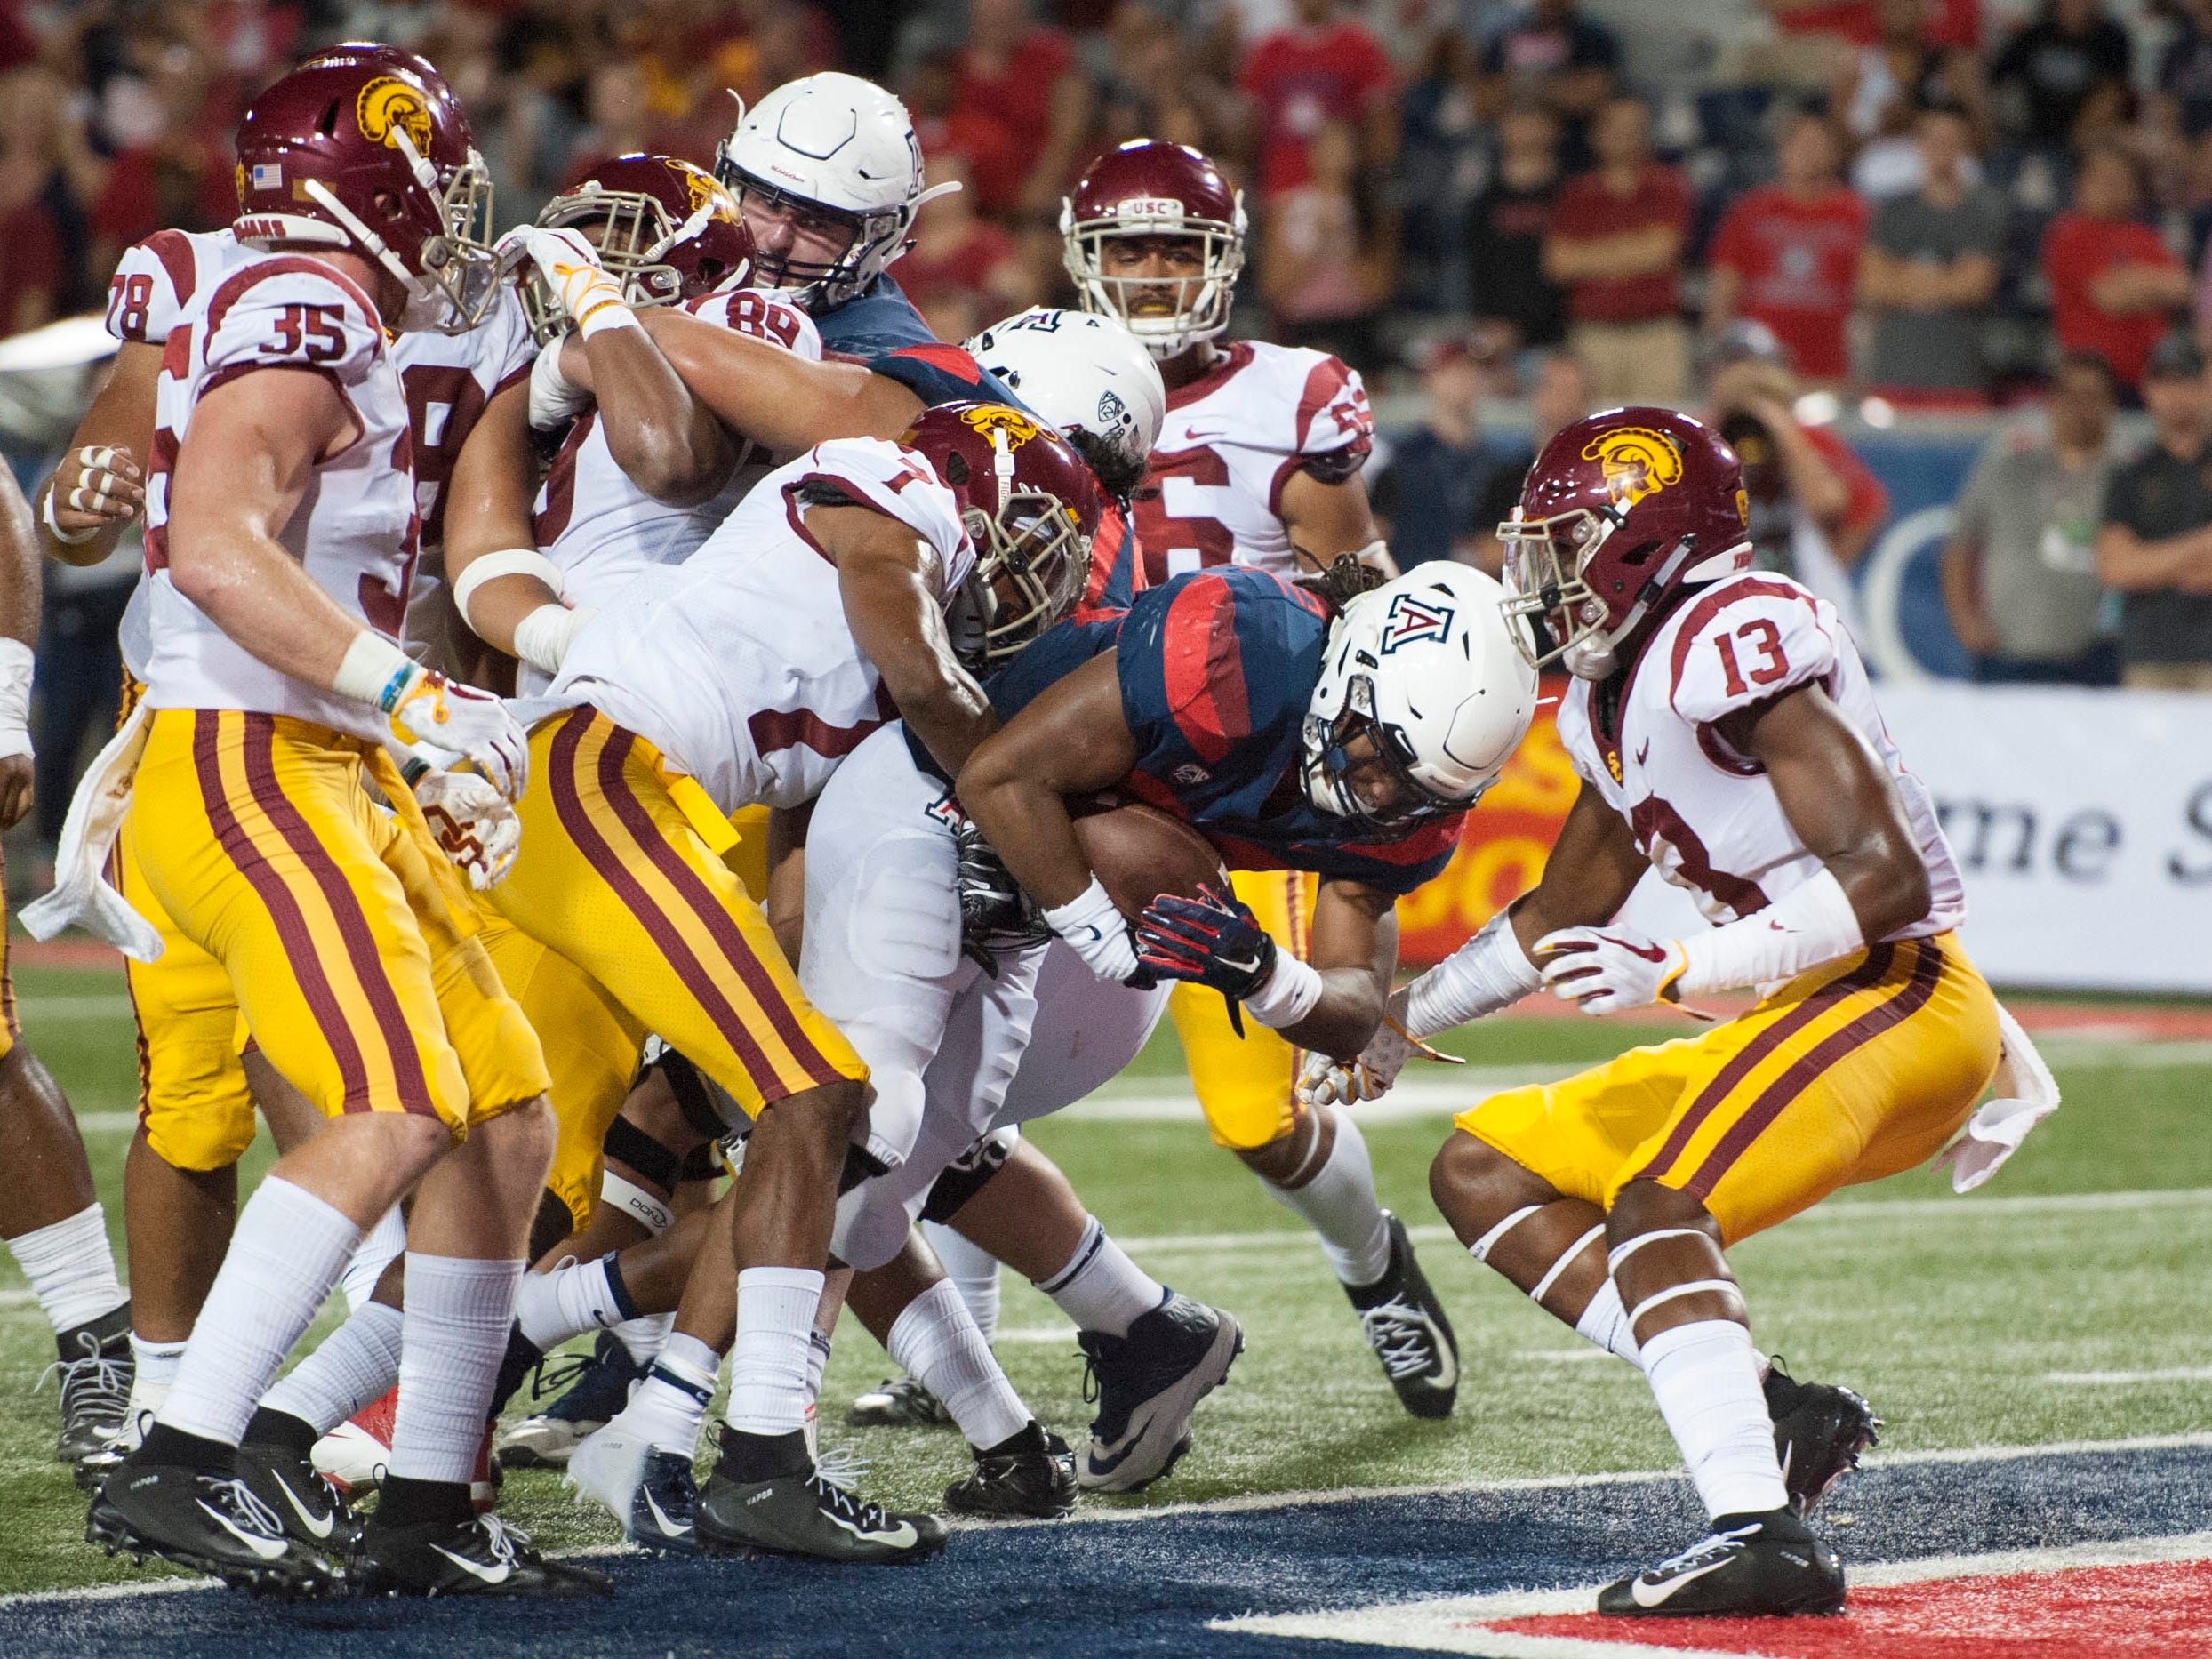 Sep 29, 2018; Tucson, AZ, USA; Arizona Wildcats running back Gary Brightwell (23) scores a touchdown against the Southern California Trojans during the second half at Arizona Stadium. Mandatory Credit: Casey Sapio-USA TODAY Sports